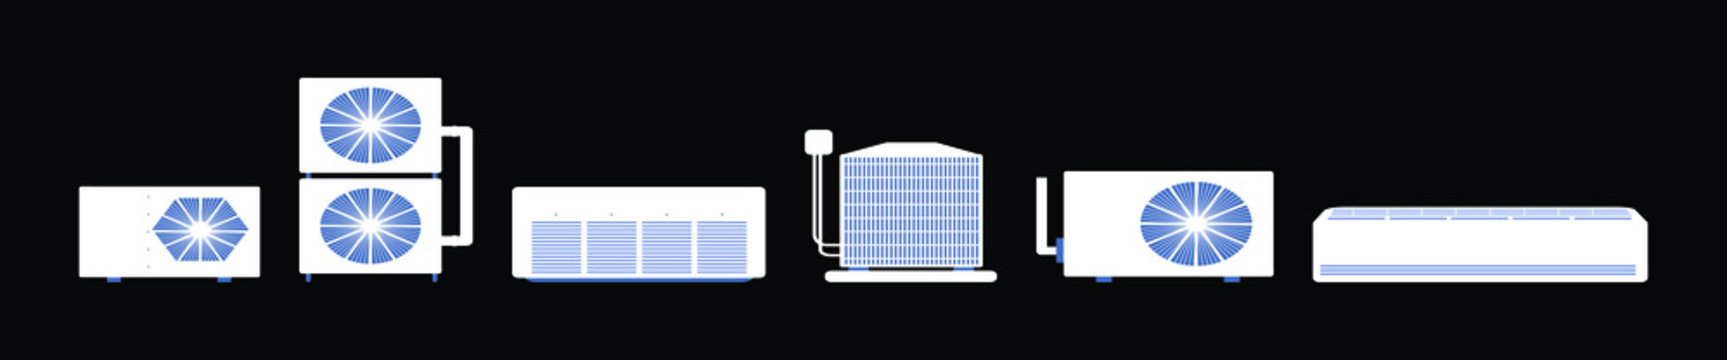 Air conditioner or air conditioning and air compressor part of hvac system vector icon set design isolated on black